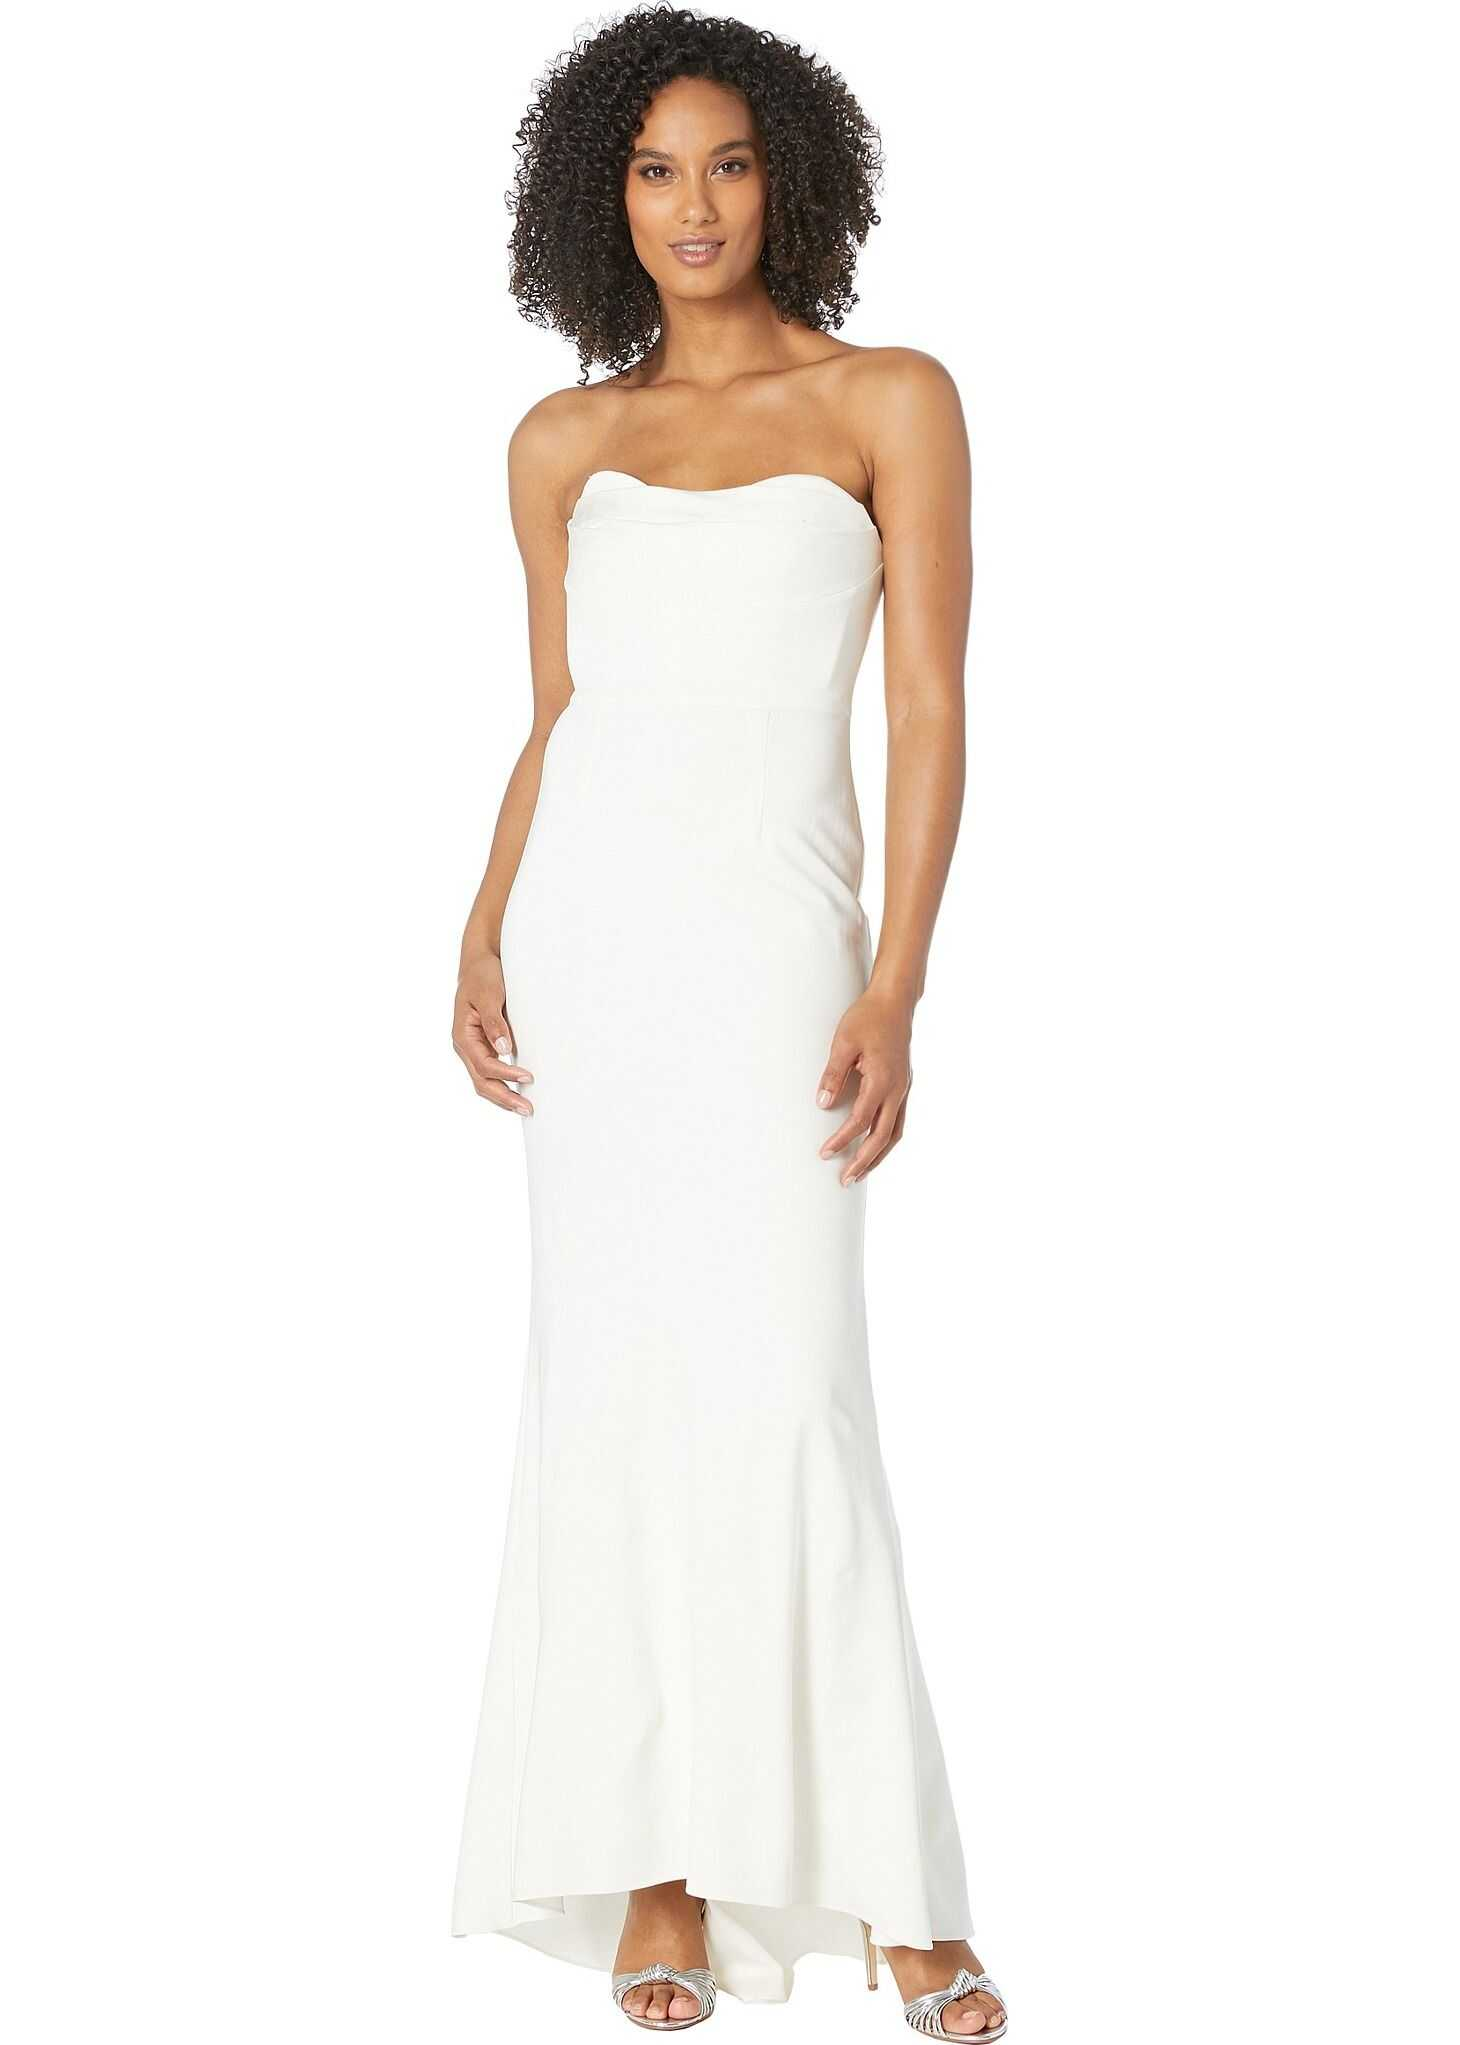 Adrianna Papell Knit Sweetheart Neckline Strapless Evening Gown Ivory